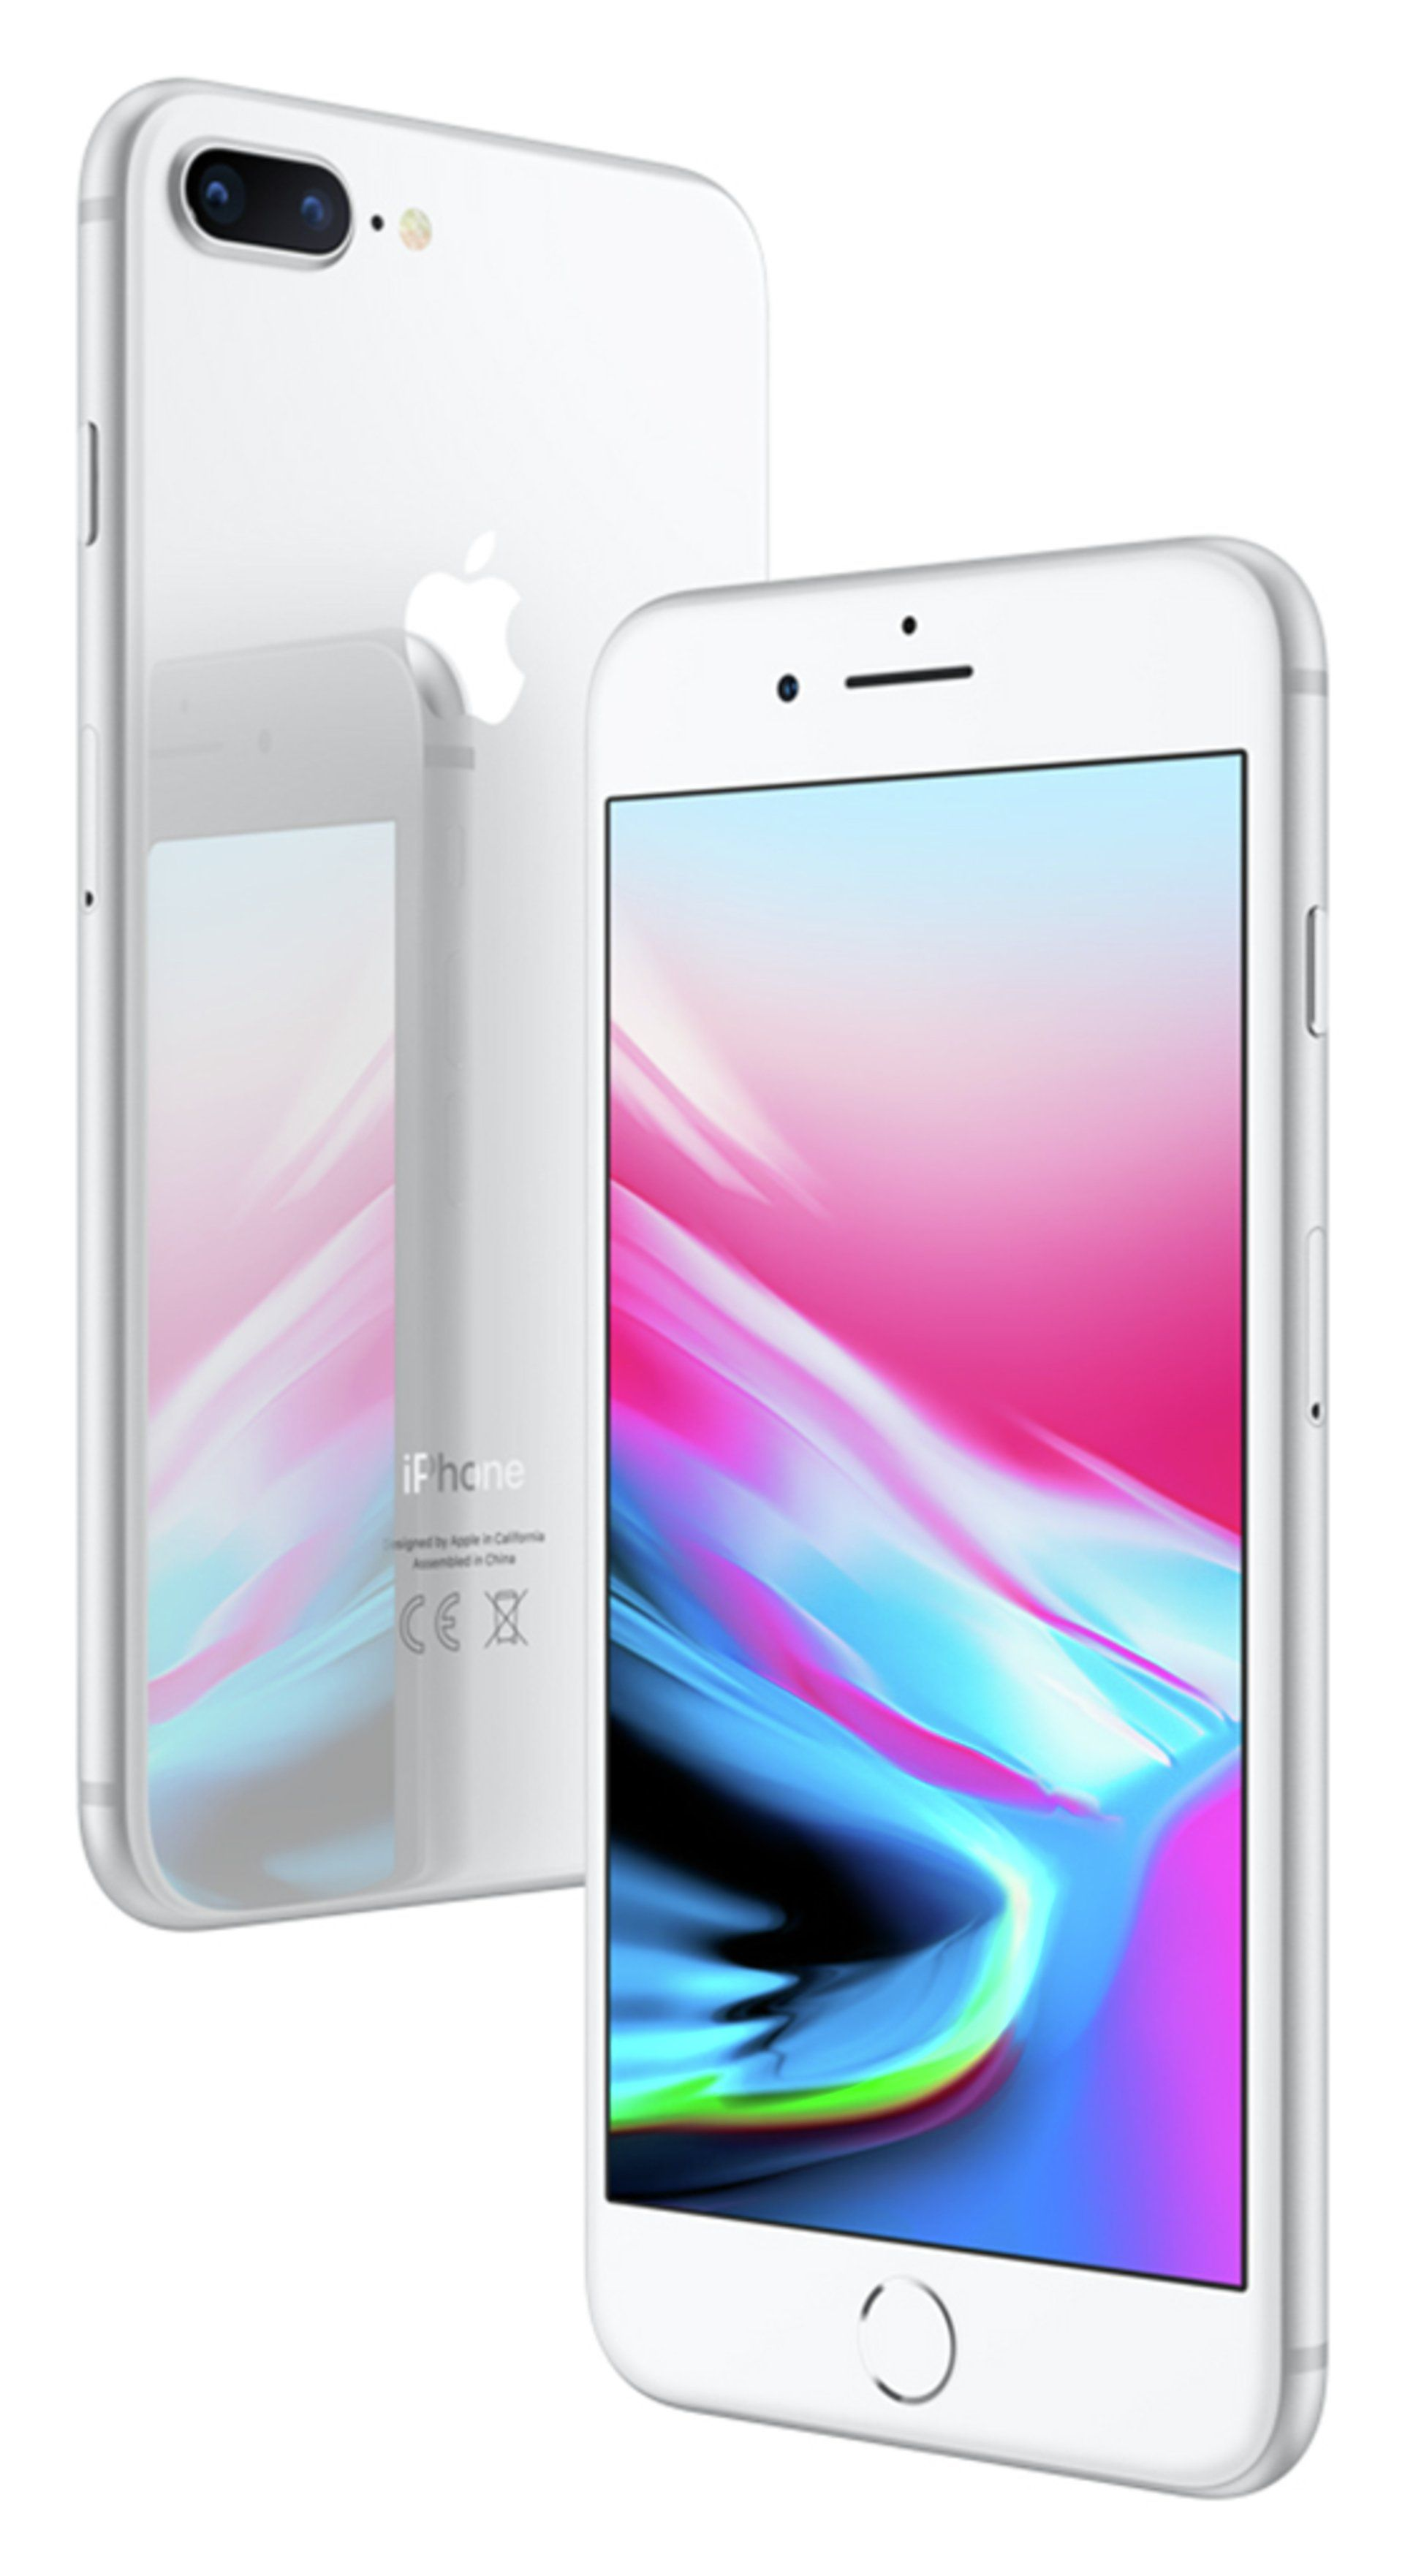 Sim Free Iphone 8 Plus 256gb Mobile Phone Silver In 2020 Apple Iphone Iphone Free Iphone